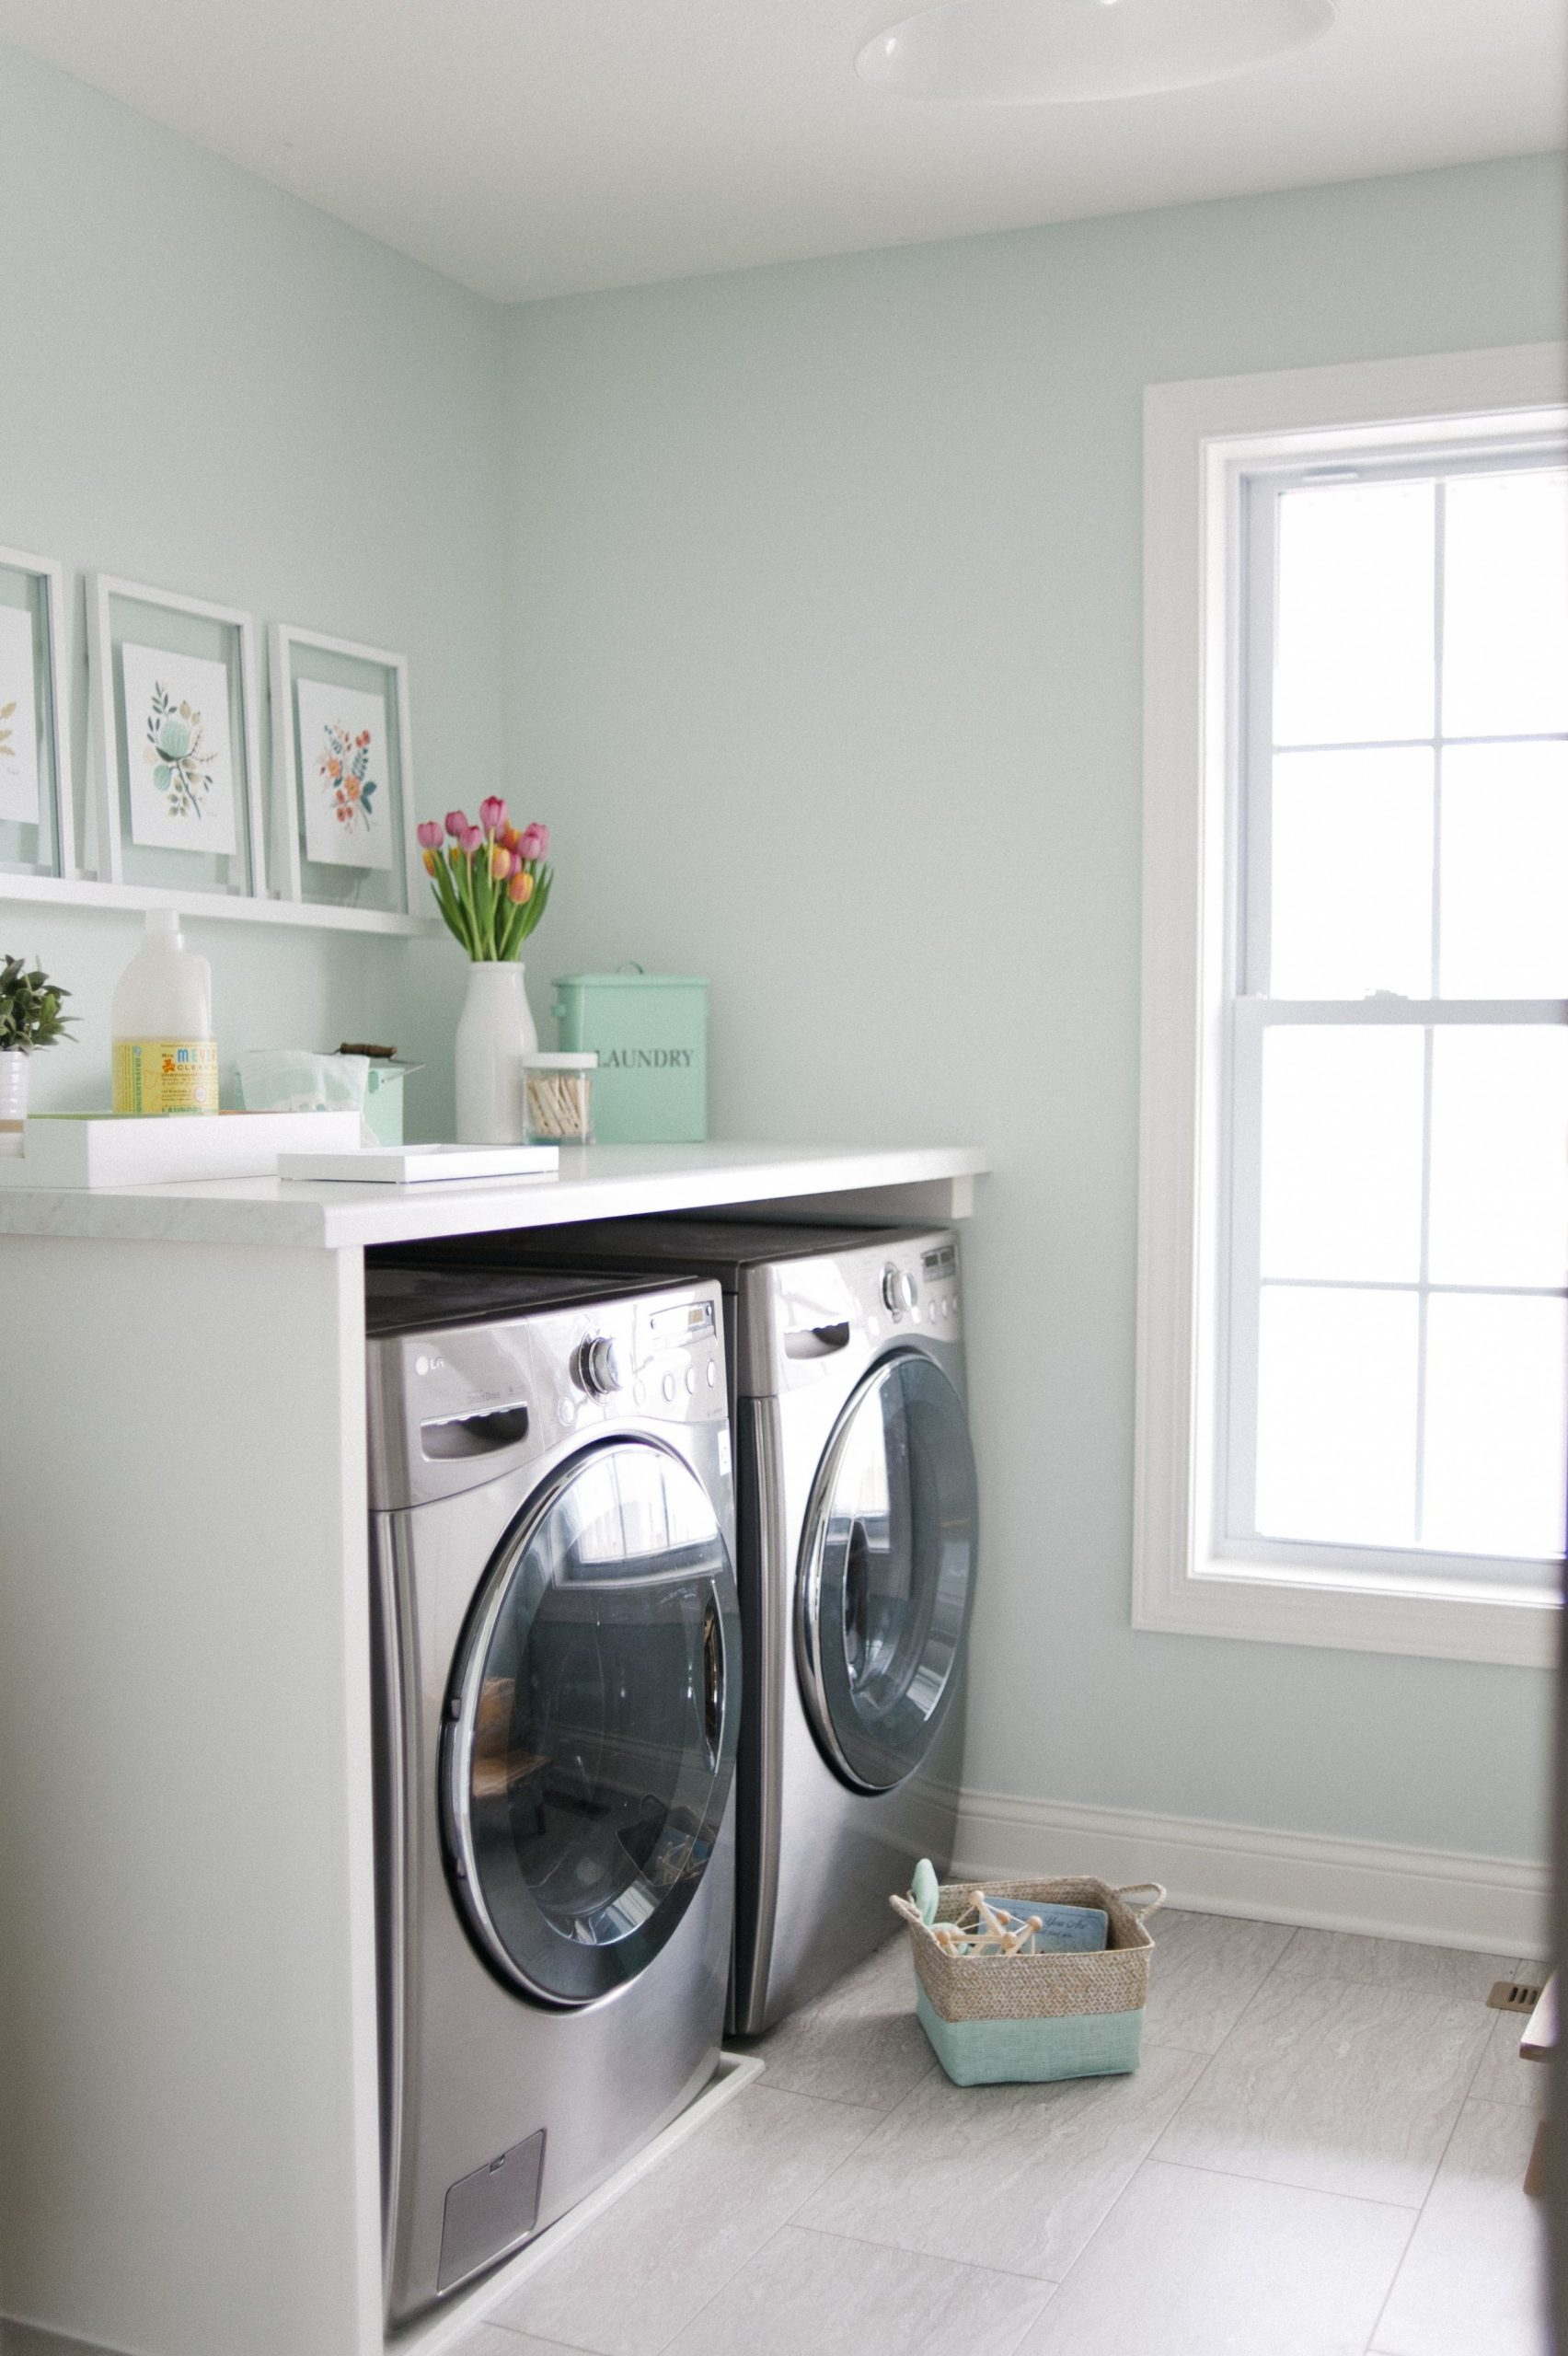 Our dream room makeover  Laundry room colors, Laundry room paint  - Laundry Room Near Bedrooms